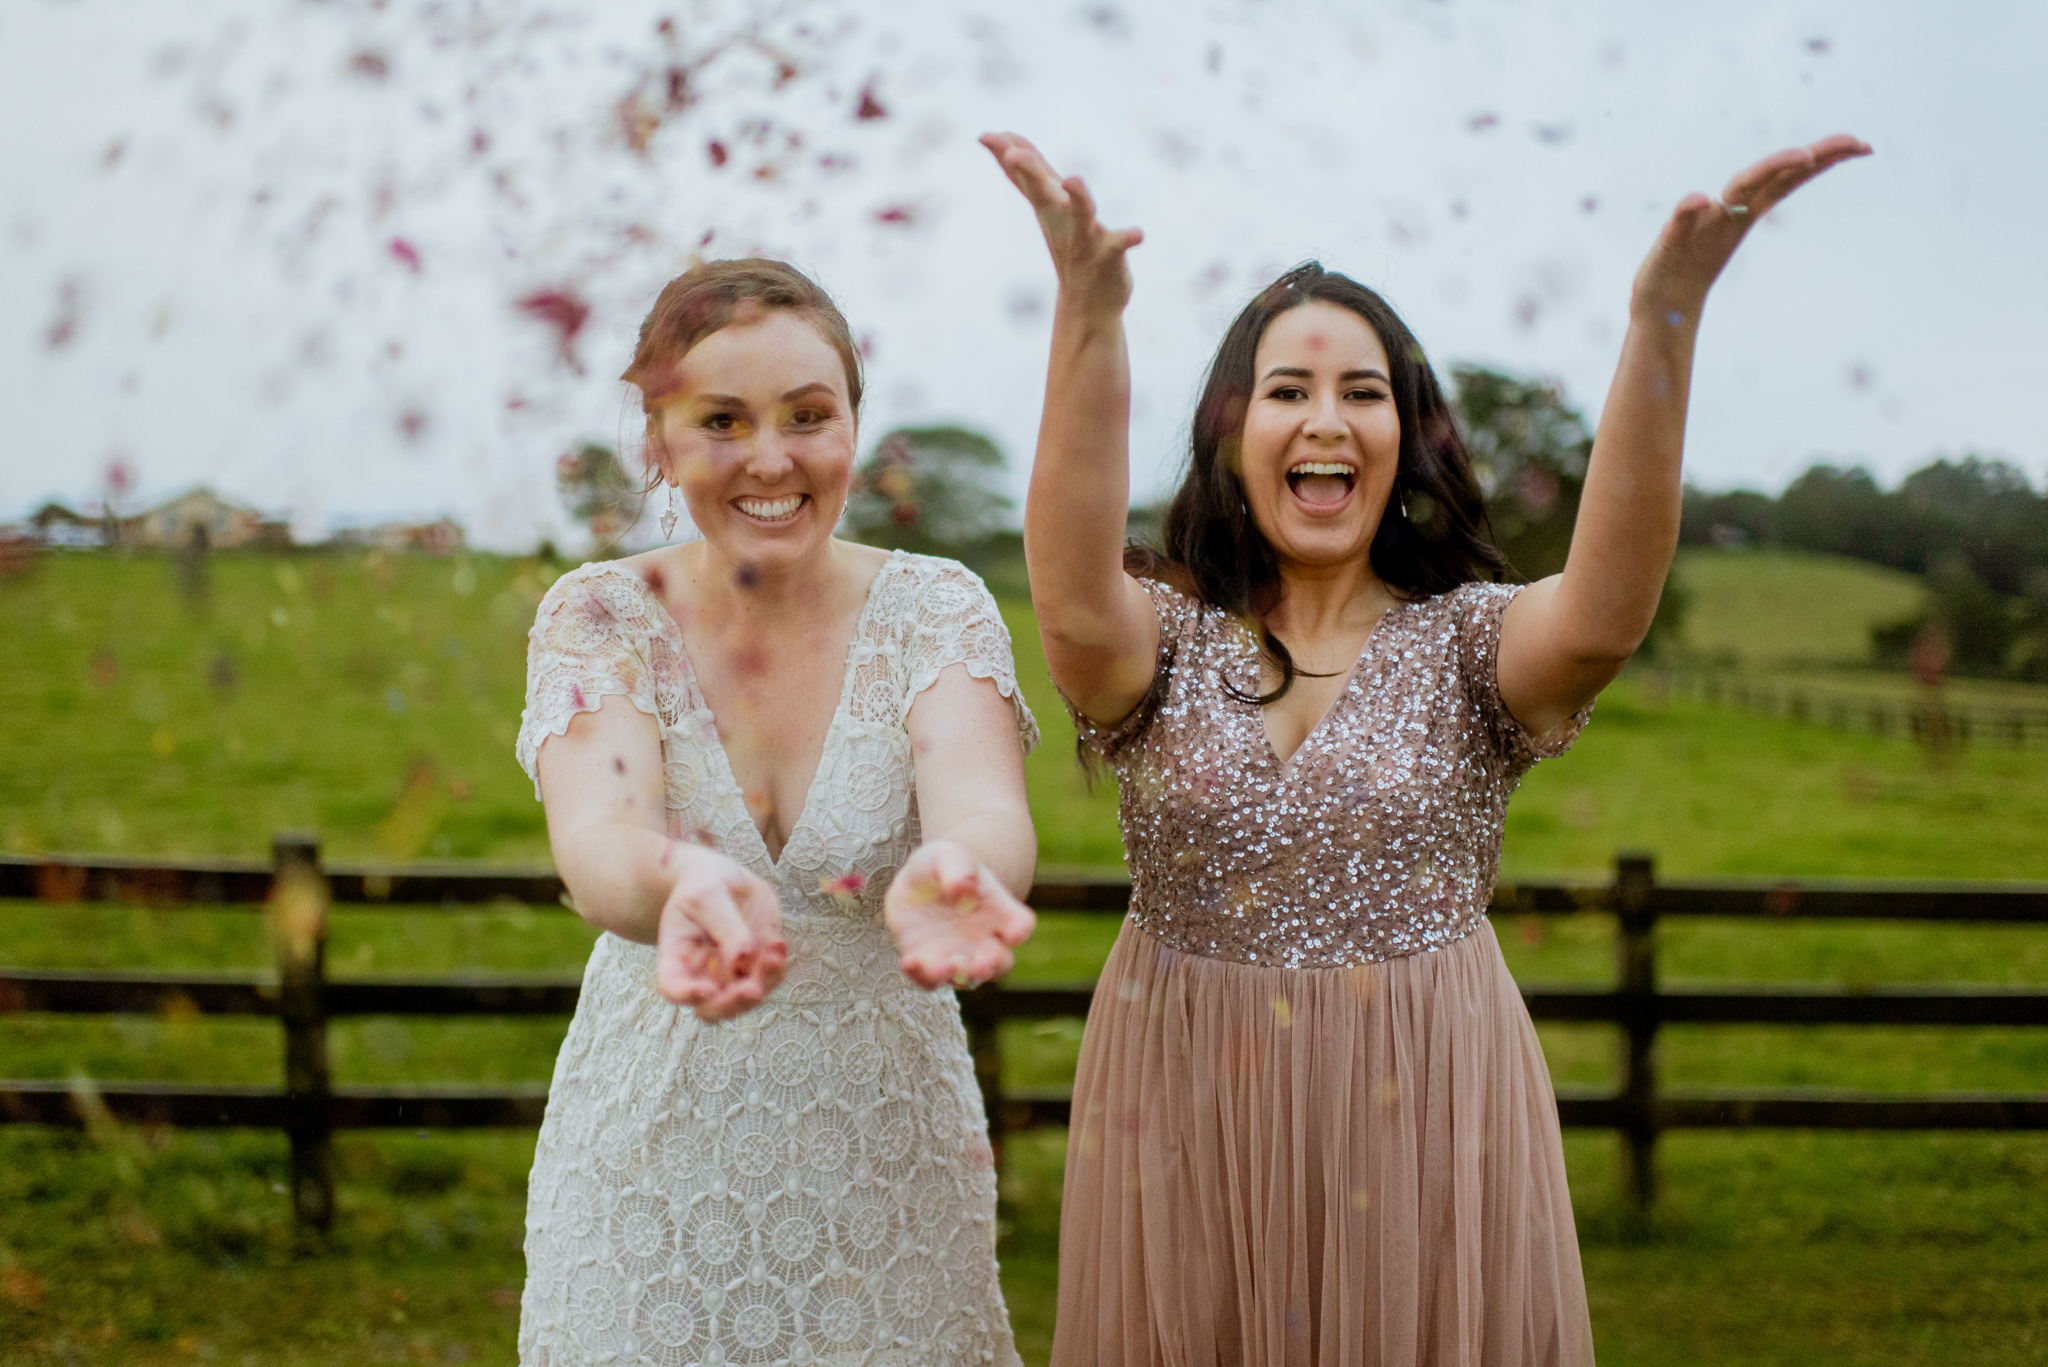 Lesbian couple playfully cheering and throwing confetti at camera